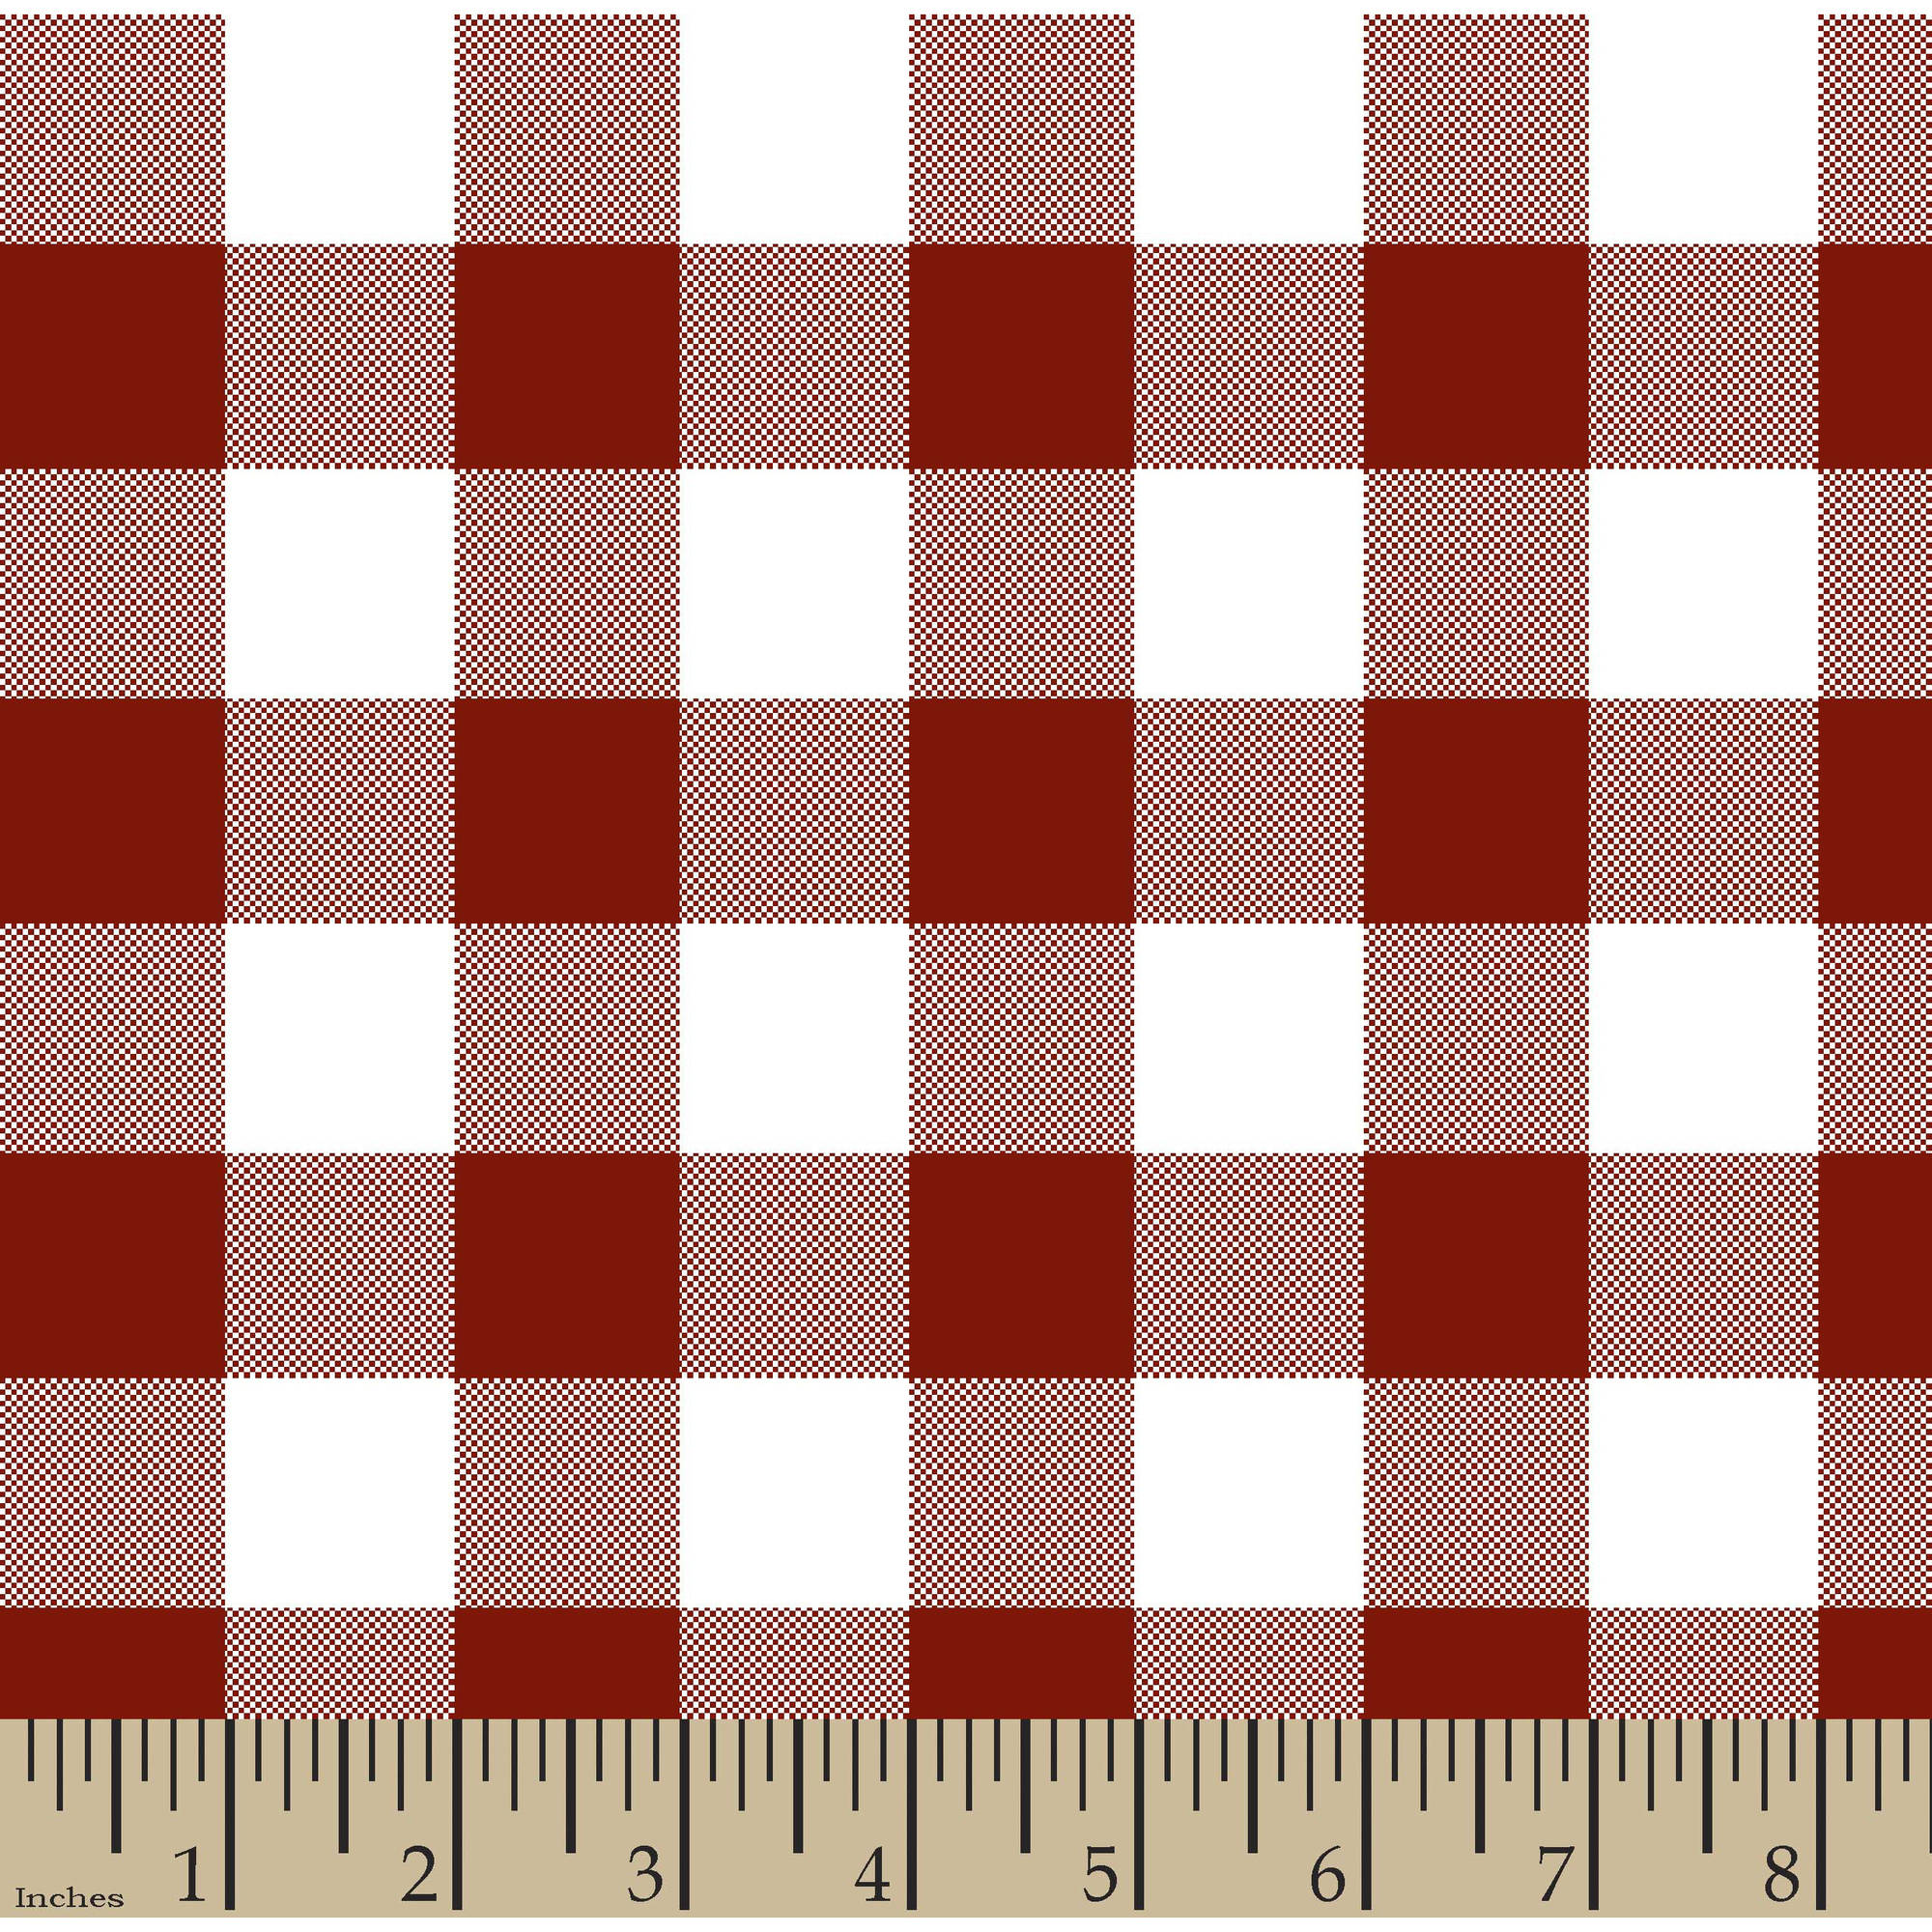 "Woven Gingham Check 1"" 65/35 Poly/Cotton Fabric by the Yard, Poppy Red, 44/45"" Width"